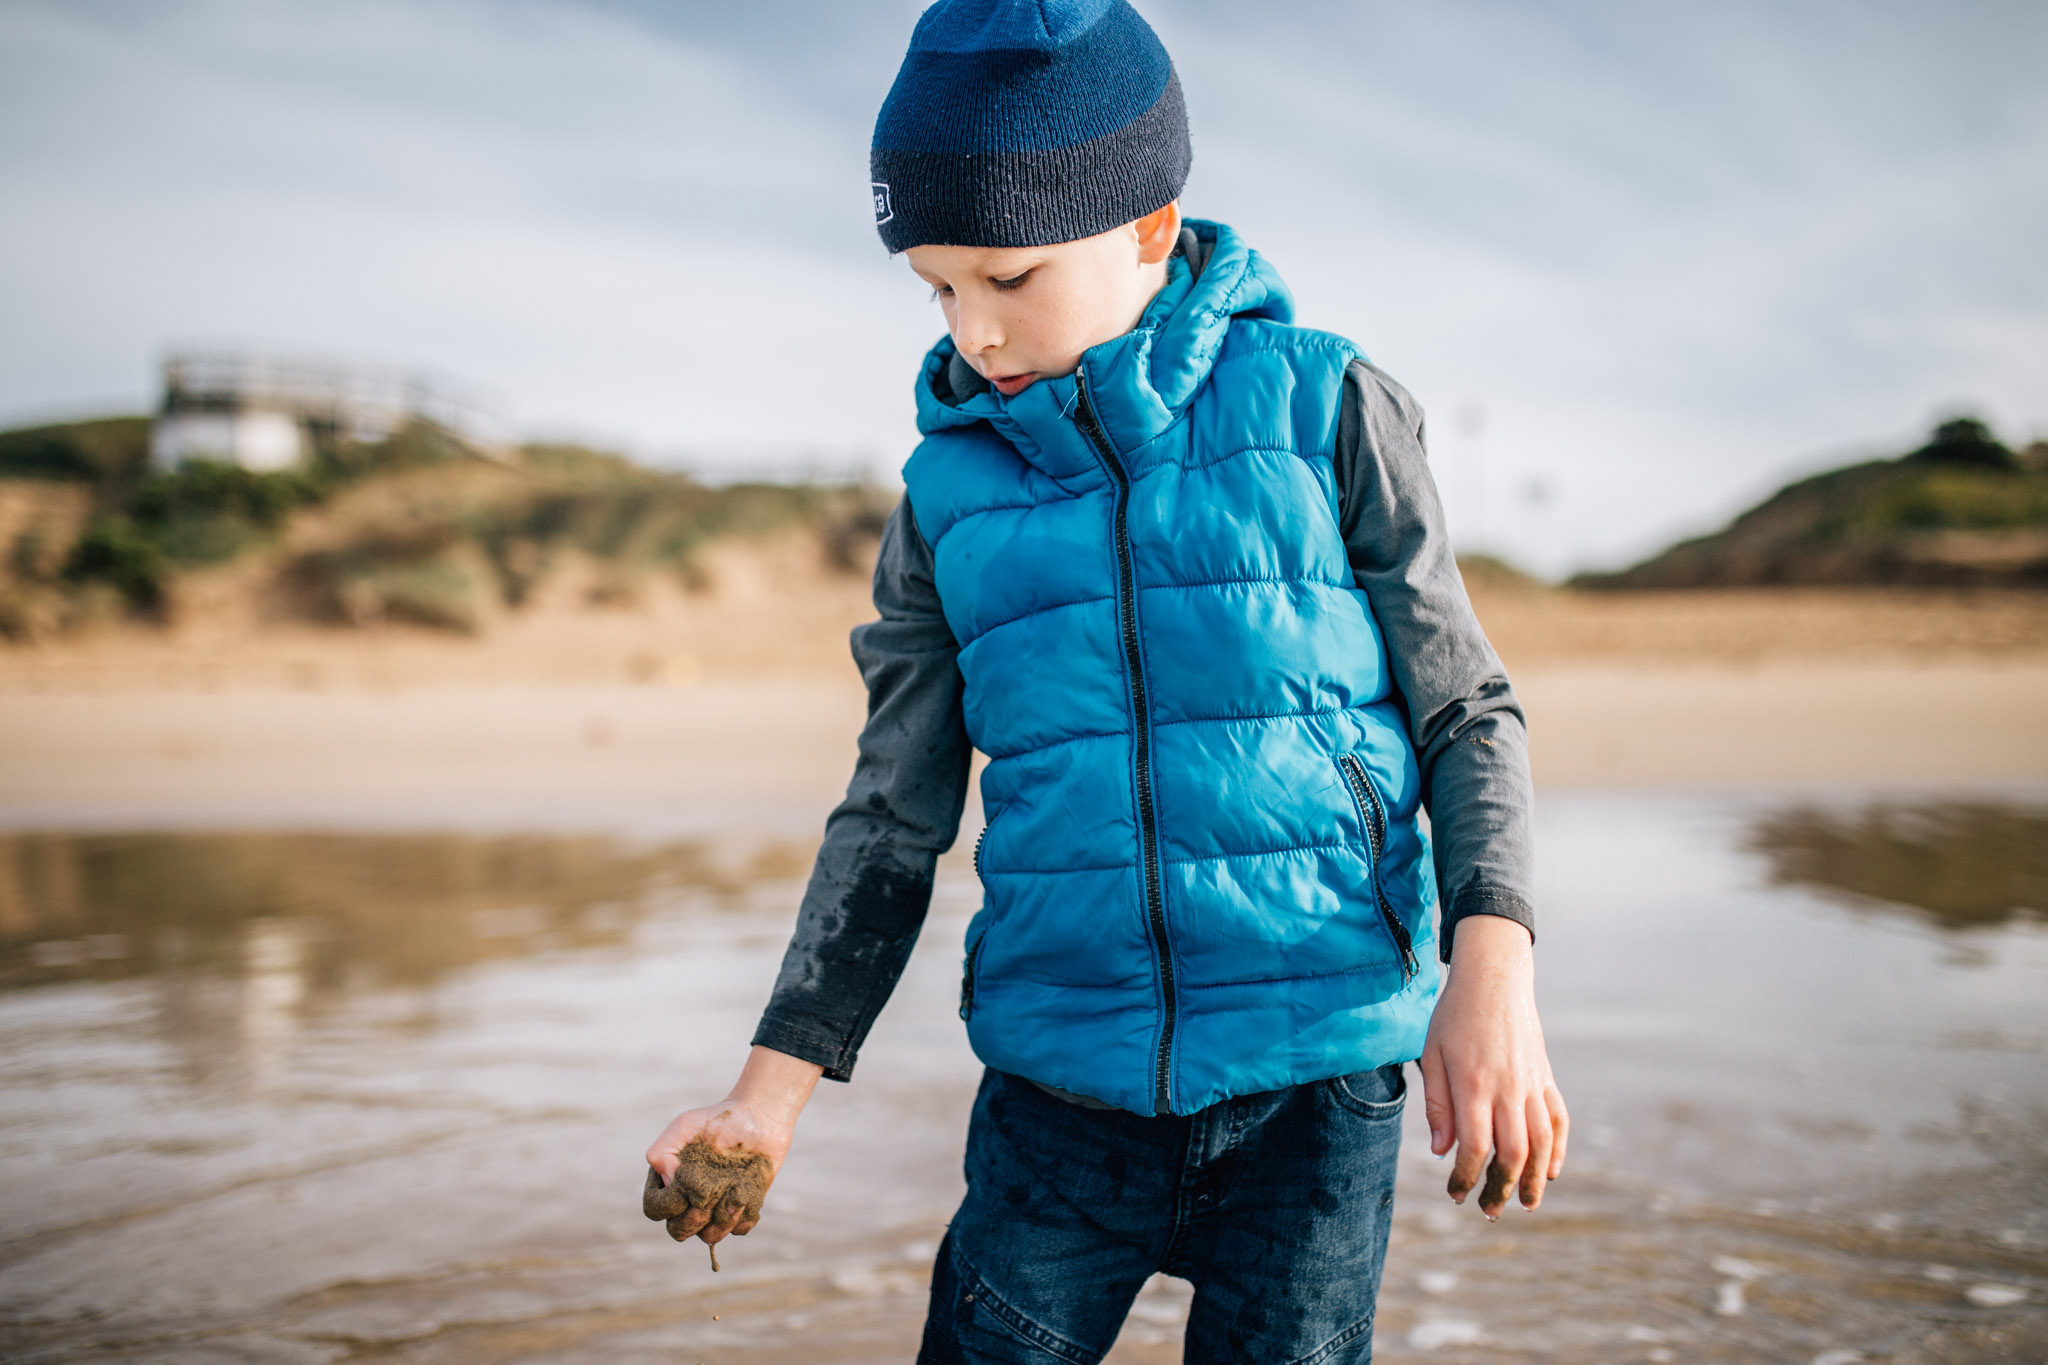 boy playing with sand at beach (1 of 1).jpg